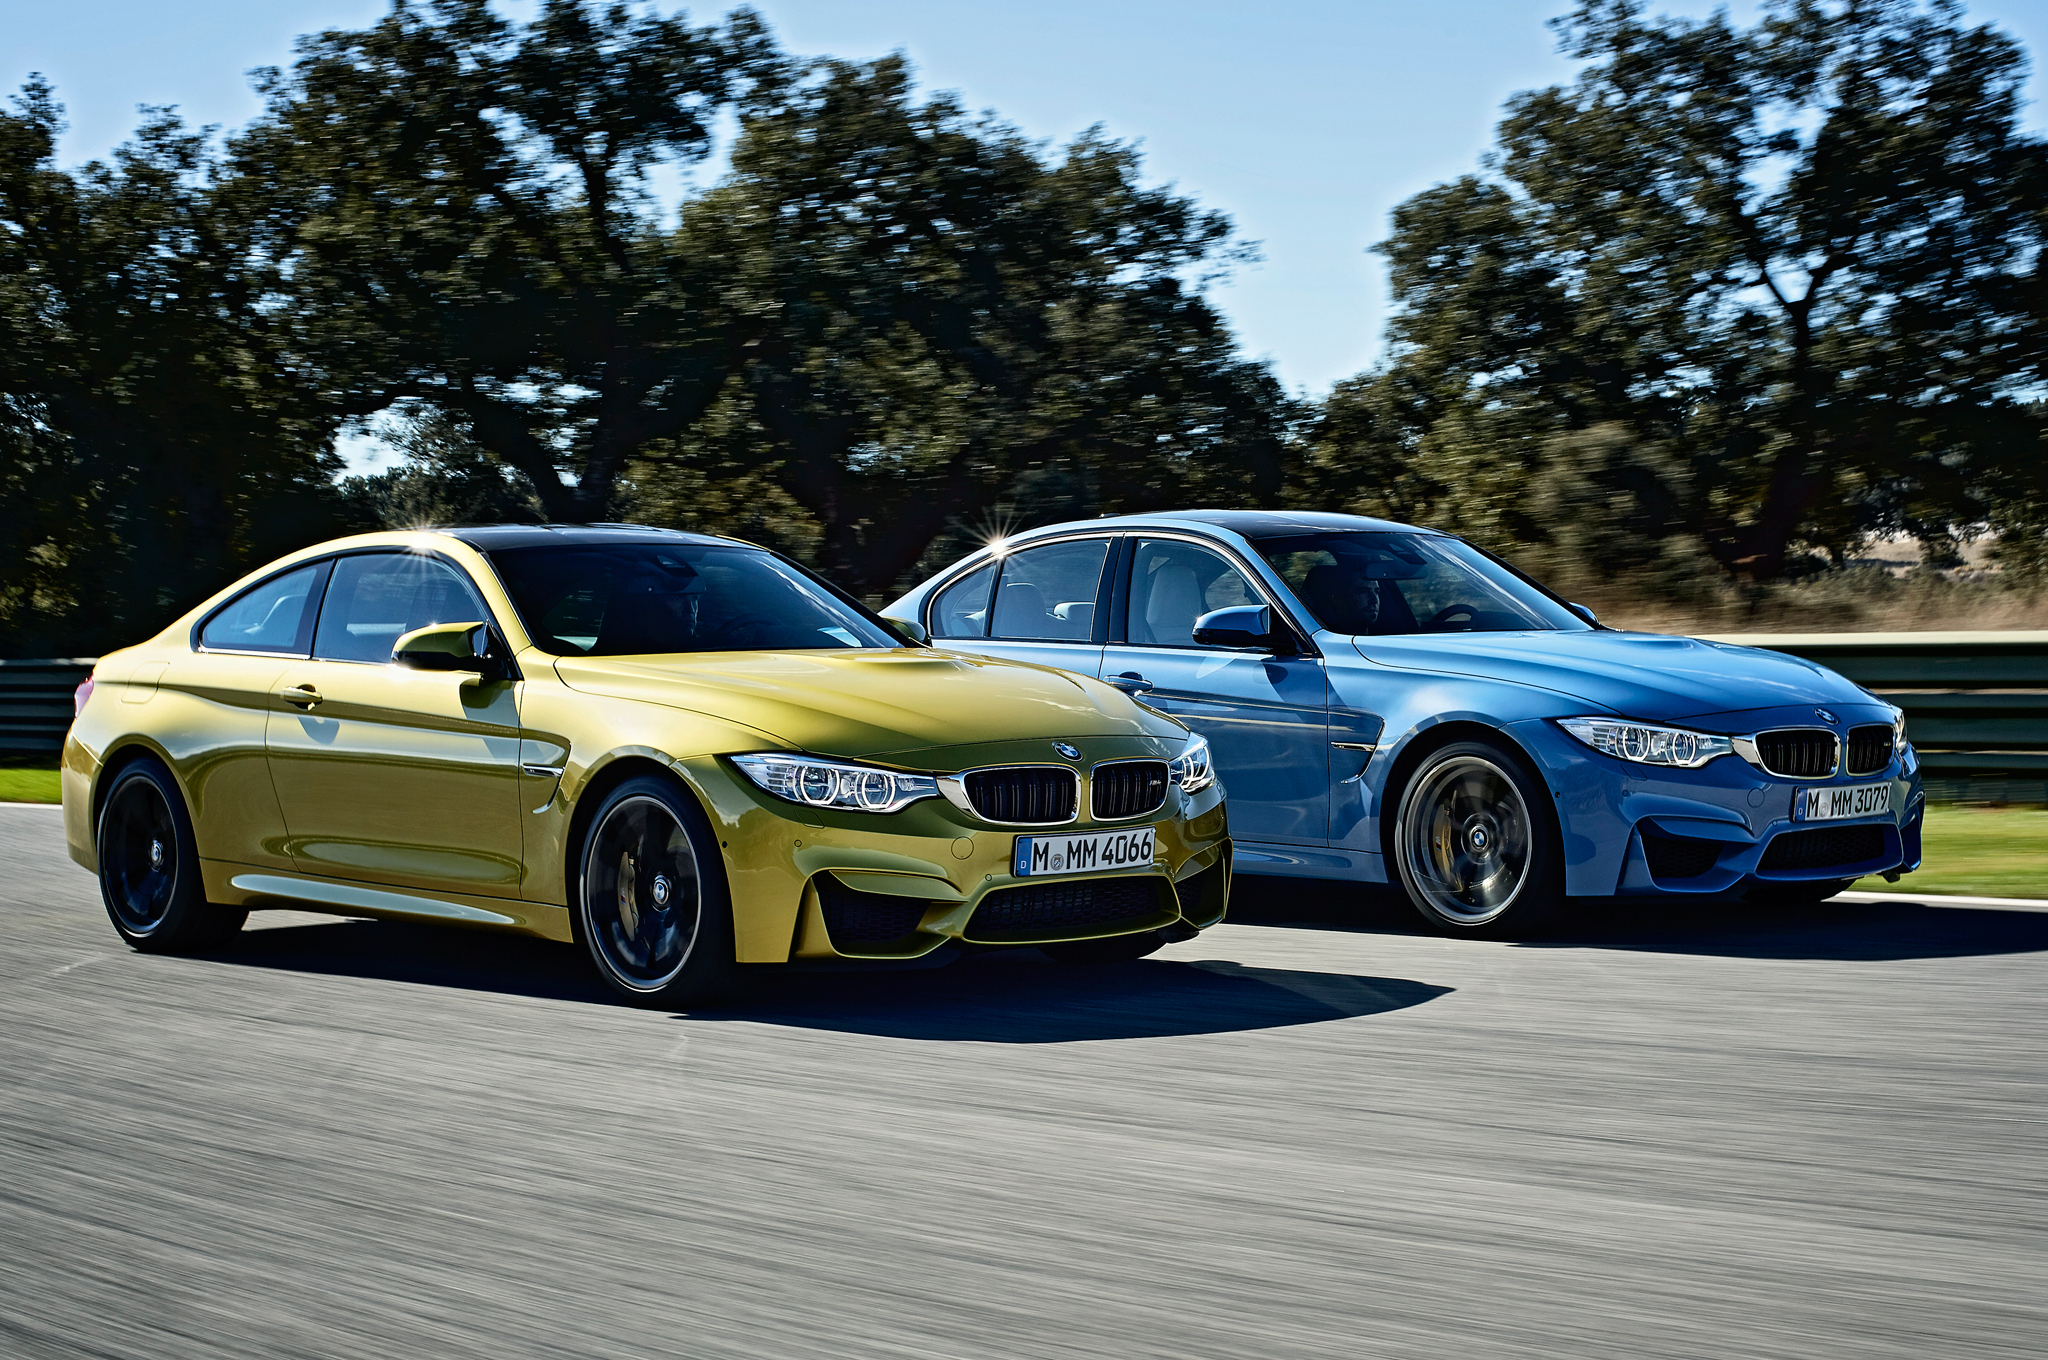 2015 Bmw M3 And Bmw M4 On Road (Photo 41 of 55)